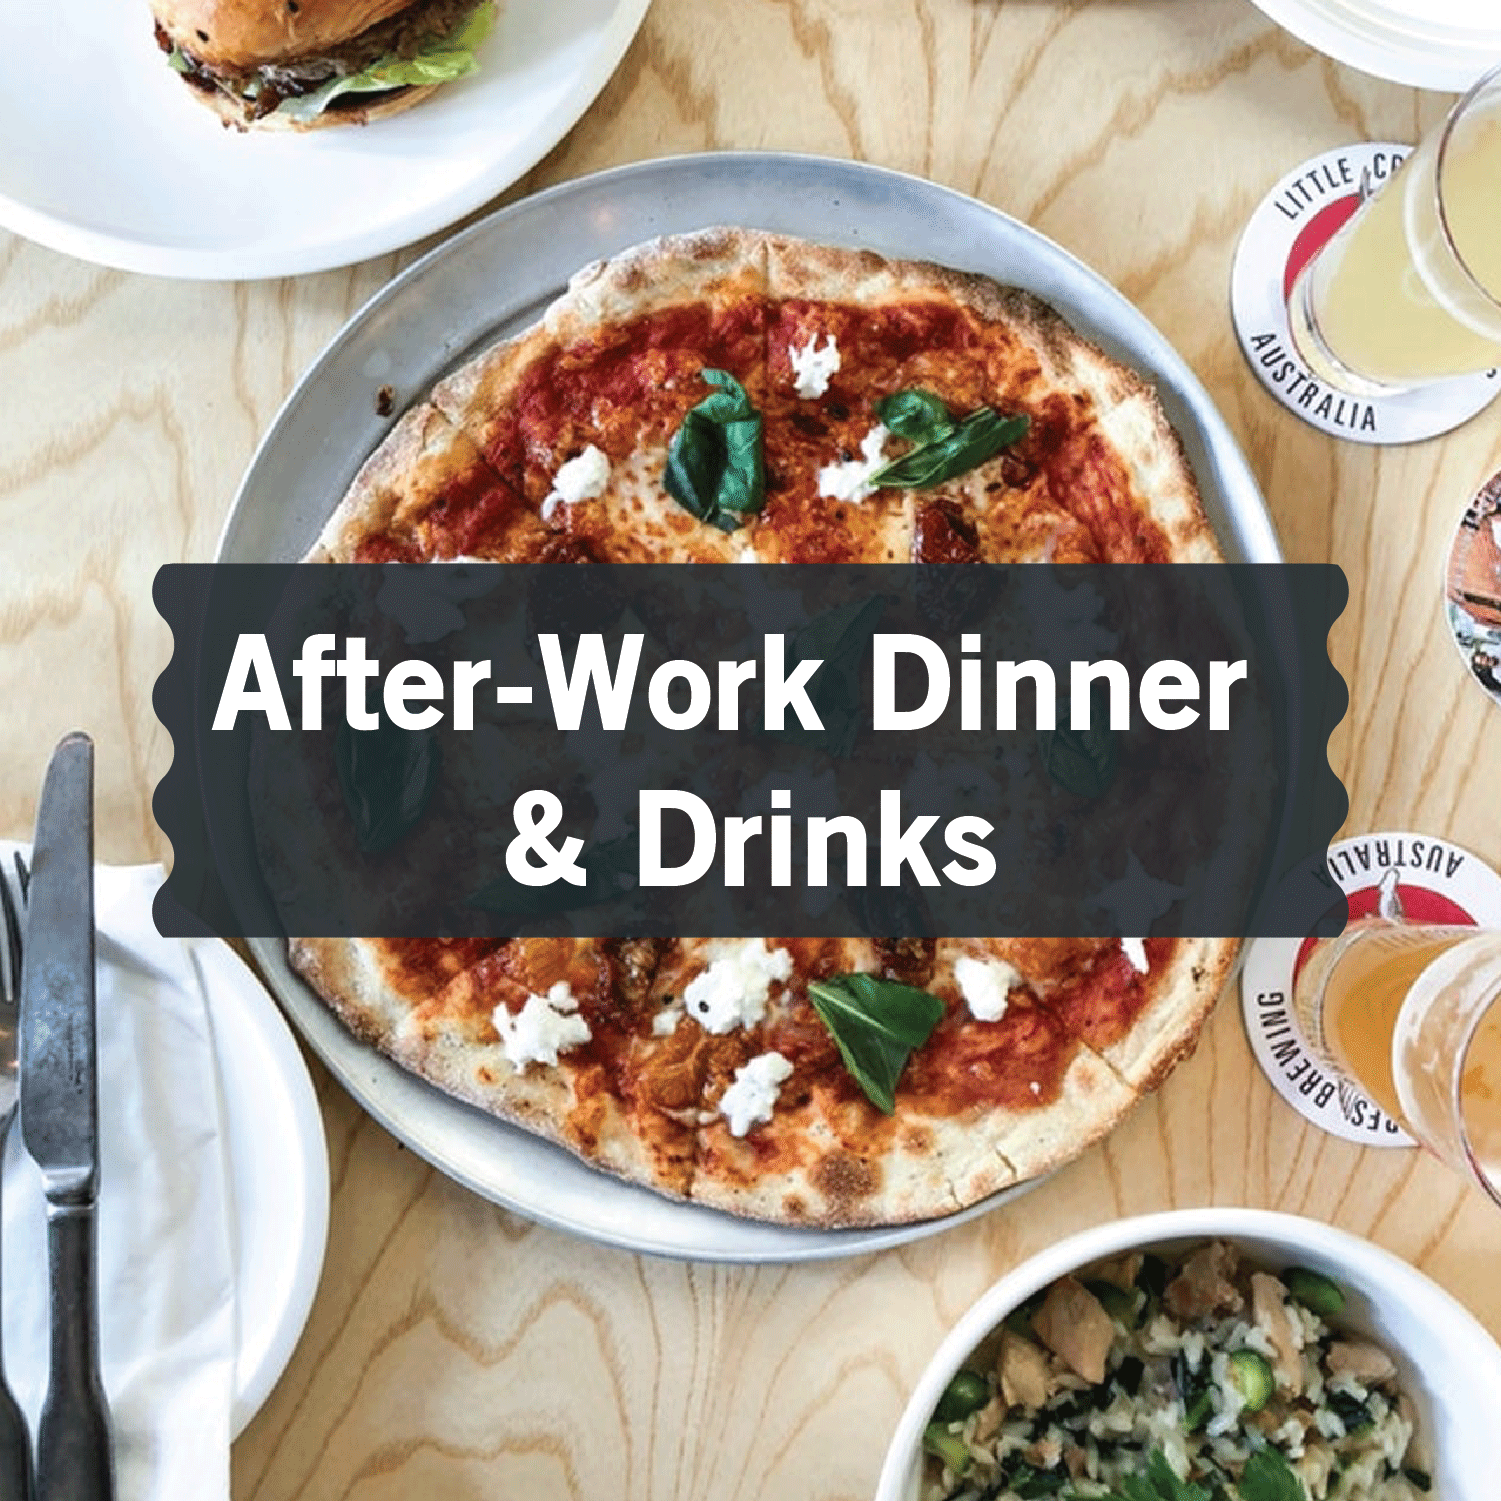 Best Places for After-Work Dinner & Drinks in Singapore